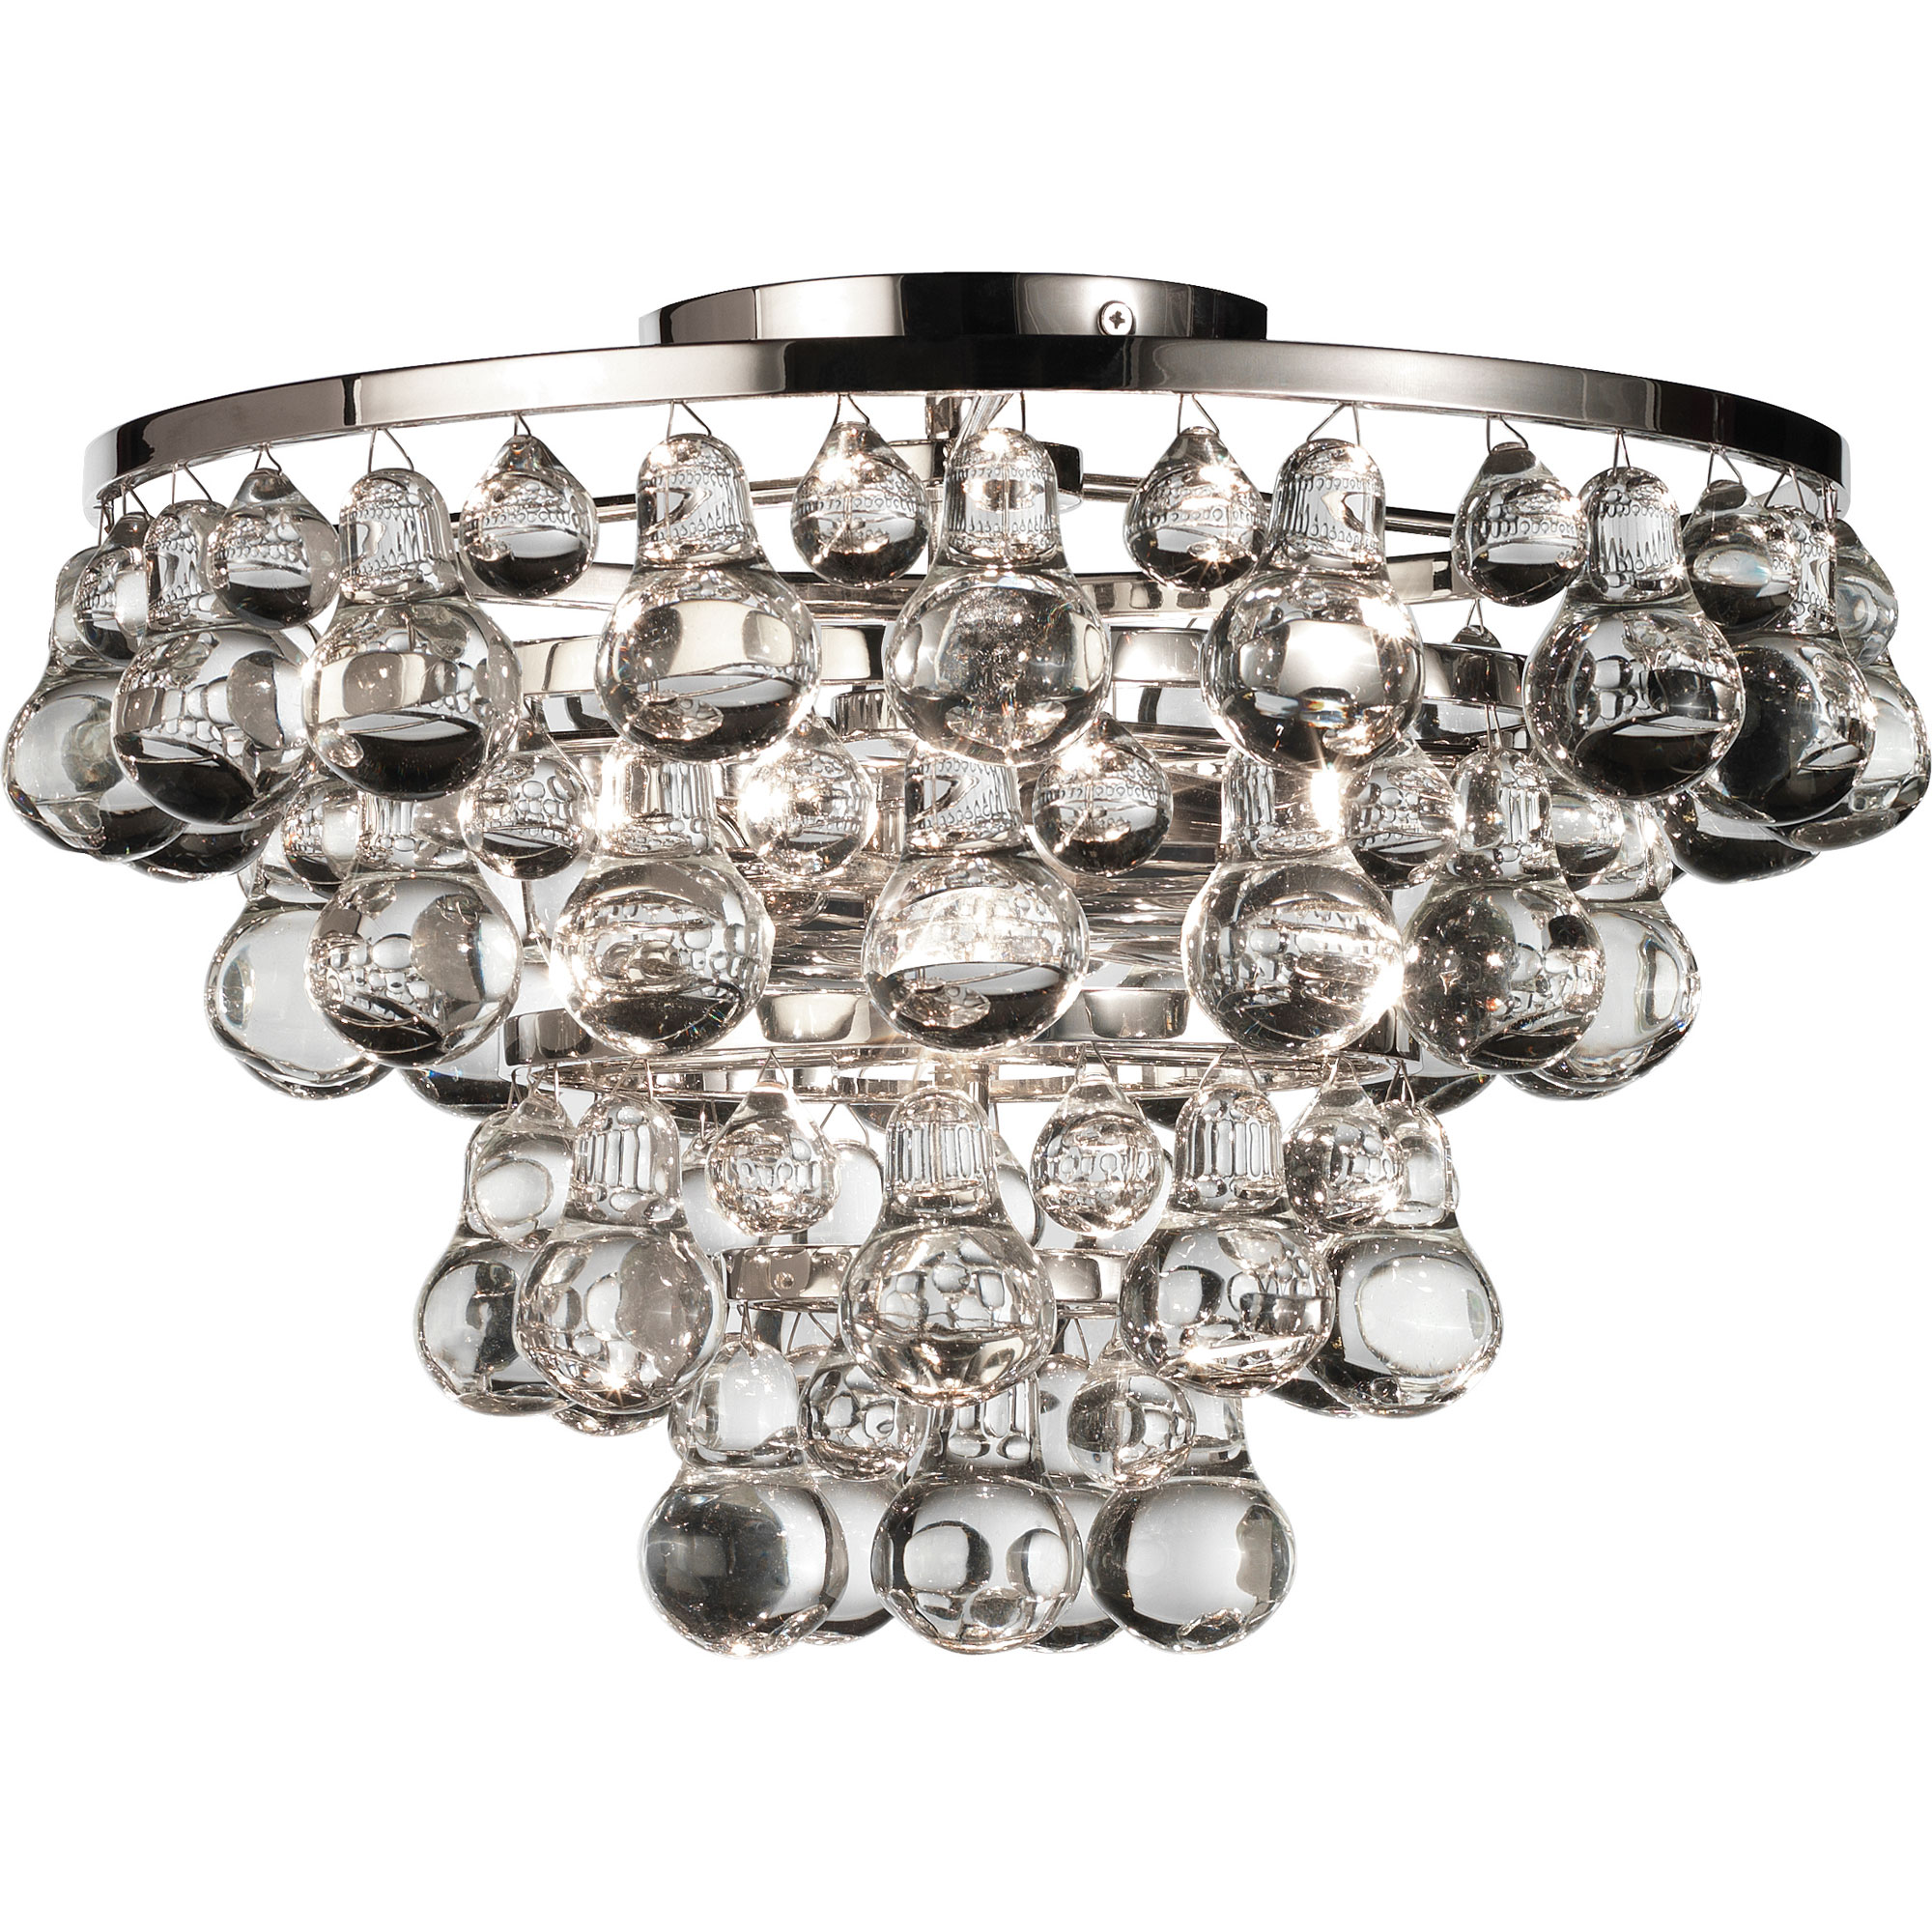 Bling Ceiling Light Fixture By Robert Abbey RA S1002